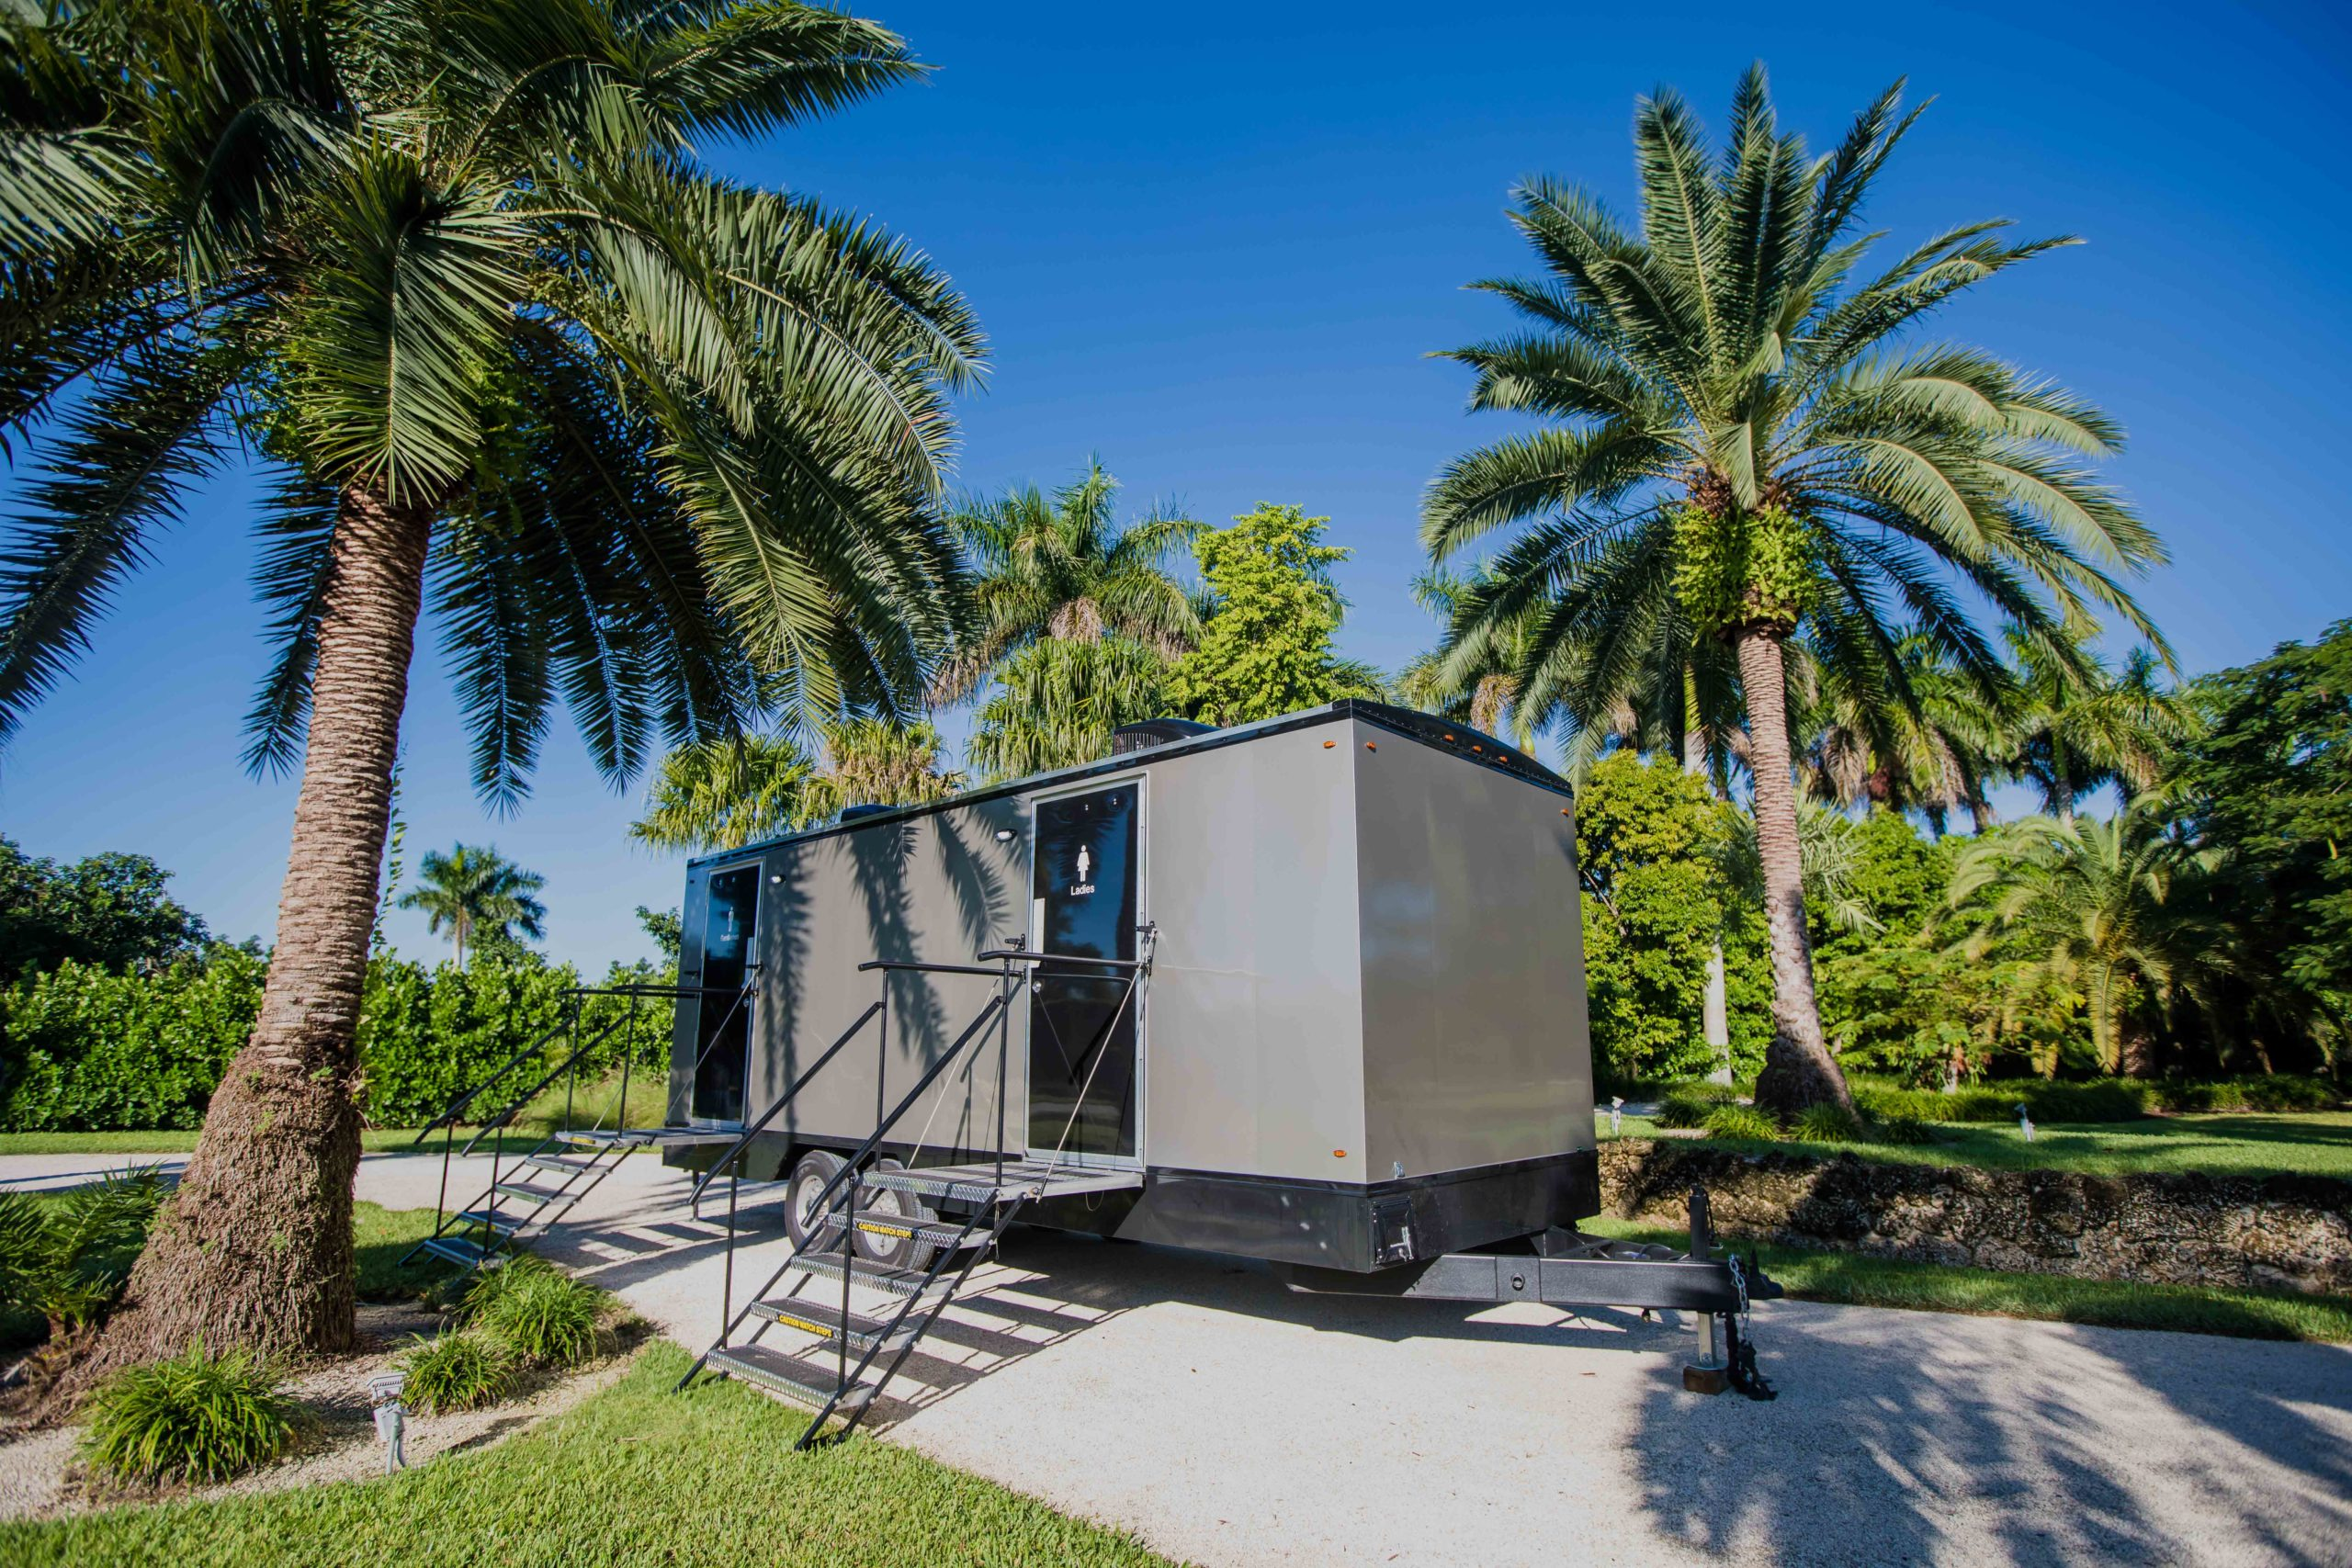 How To Maintain A Successful Portable Restroom Business In Miami, Florida.